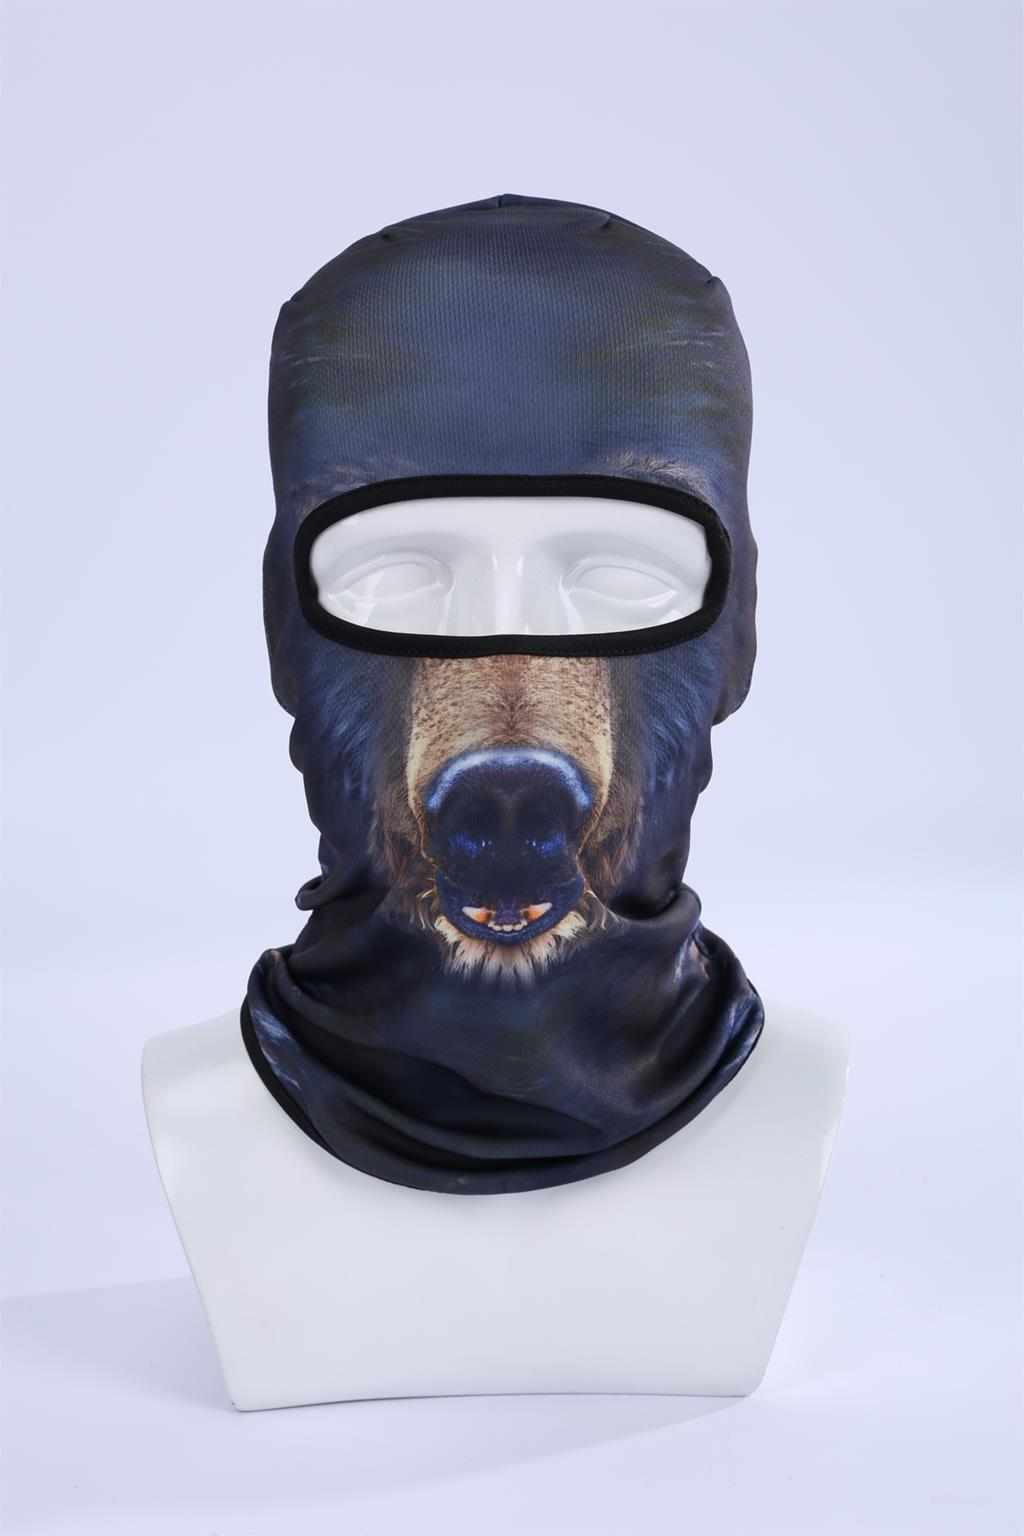 Hot Sale 2017 Cool New 3d Wild Boar Animal Hood Hat Balaclava Full Face Mask Outdoor Sports Bicycle Cycling Ski Masks Bbb08 women beanie new hot sale 3d zebra animal hood hat balaclava full face mask outdoor sports bicycle cycling ski motorcycle masks